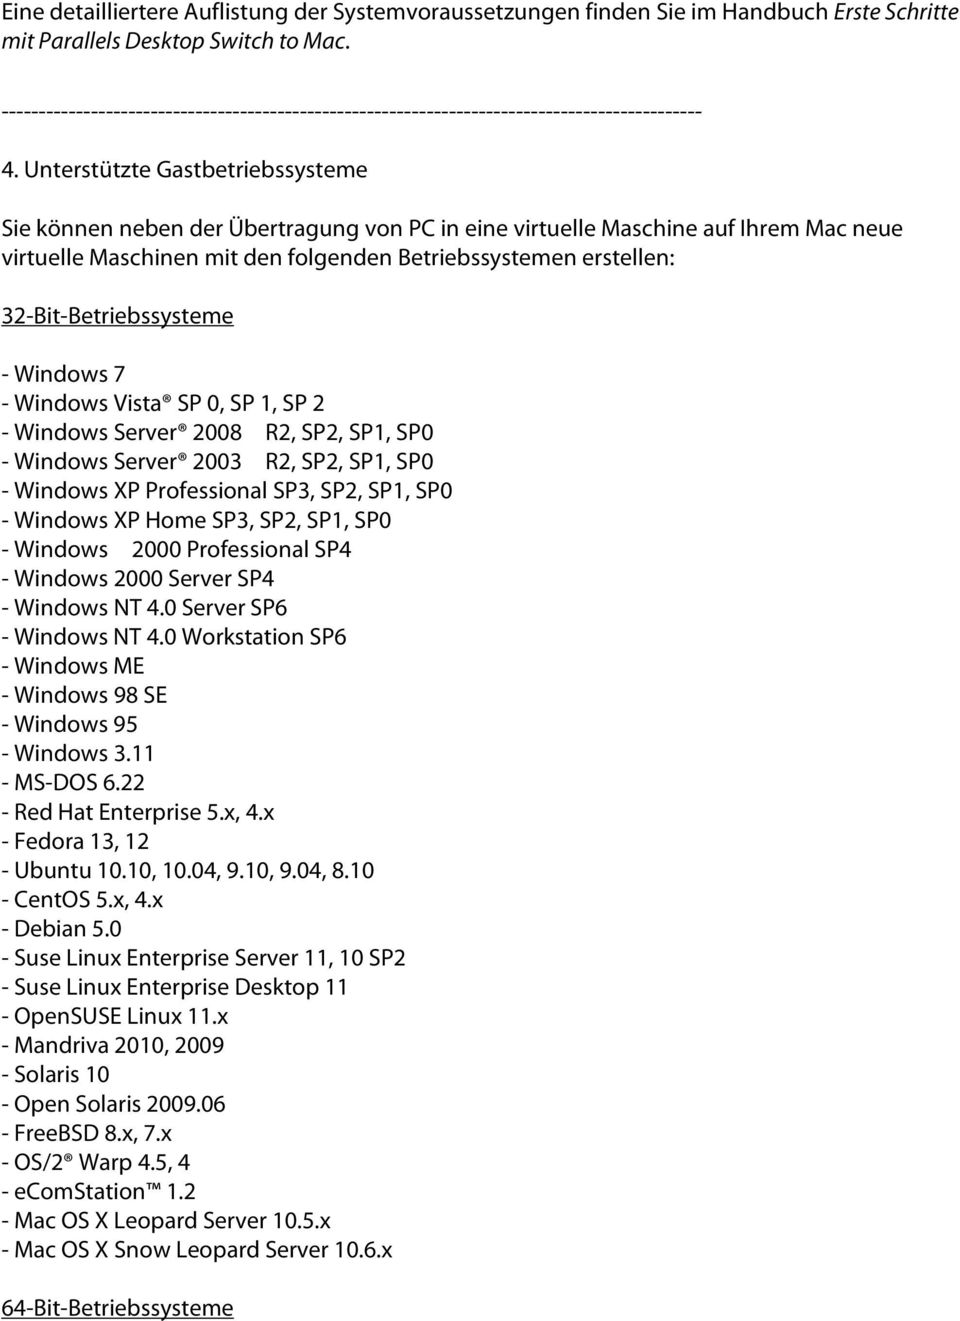 32-Bit-Betriebssysteme - Windows 7 - Windows Vista SP 0, SP 1, SP 2 - Windows Server 2008 R2, SP2, SP1, SP0 - Windows Server 2003 R2, SP2, SP1, SP0 - Windows XP Professional SP3, SP2, SP1, SP0 -